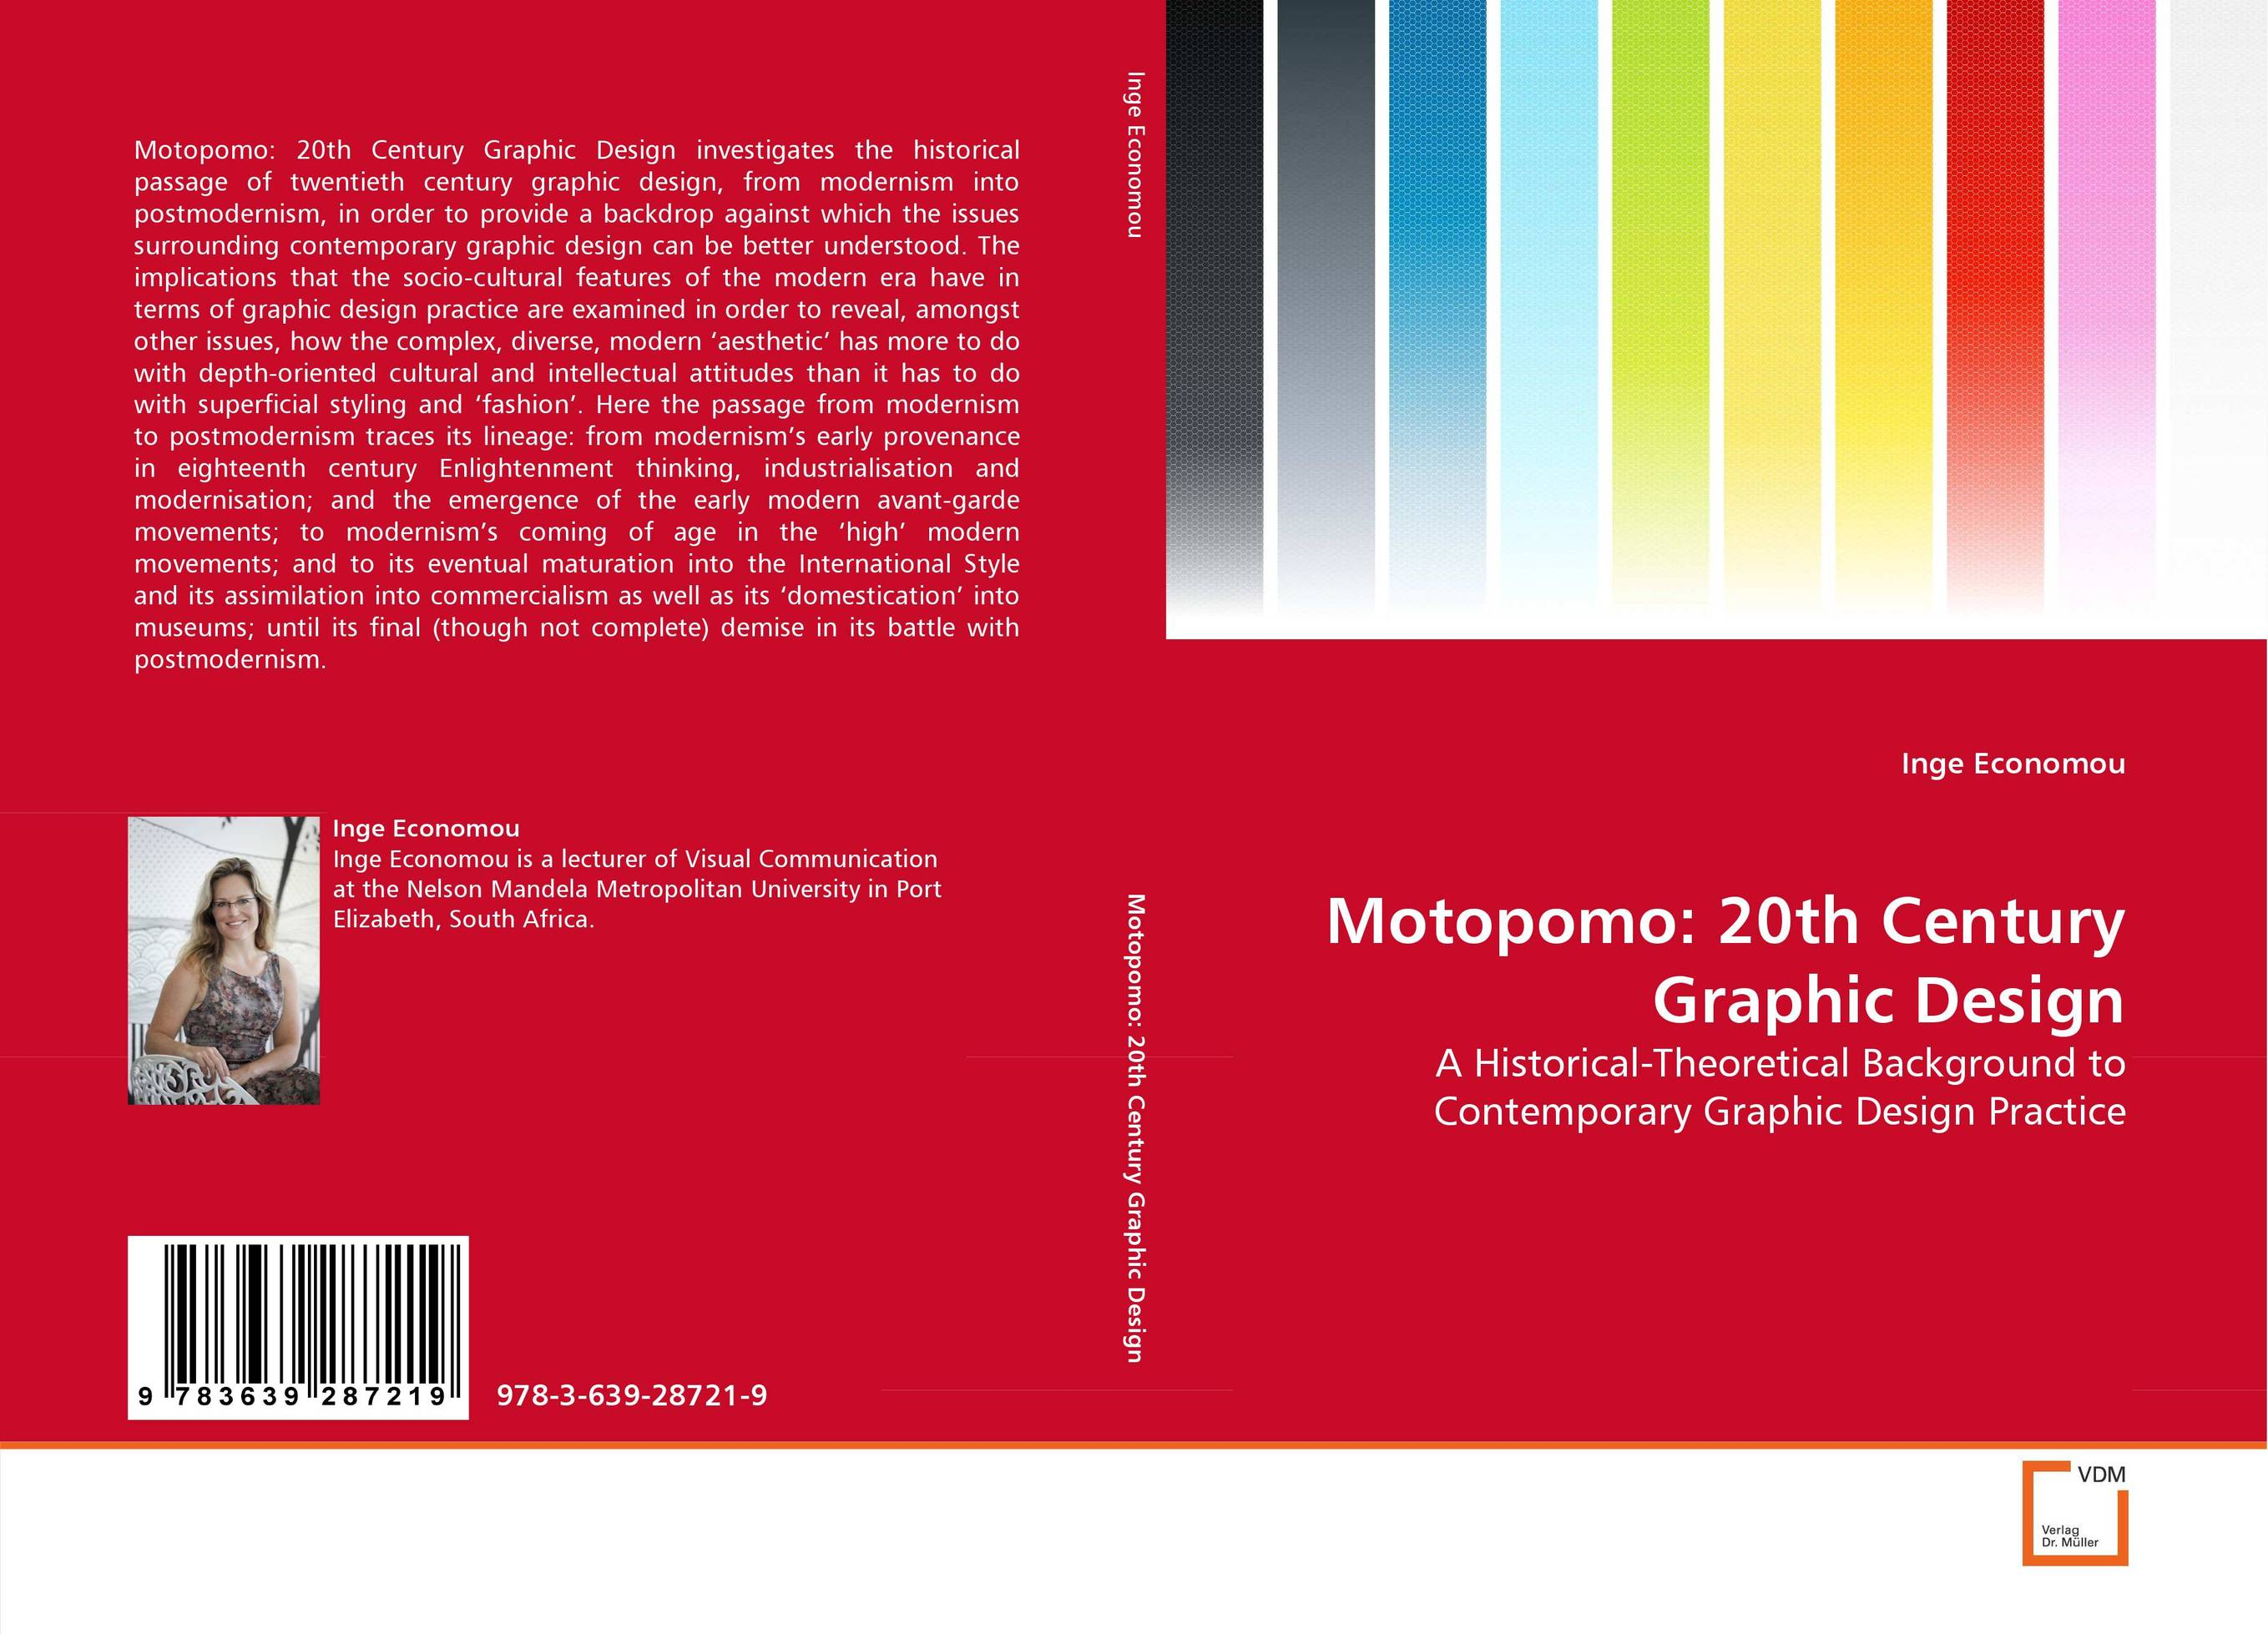 Motopomo: 20th Century Graphic Design concepts of modern art from fauvism to postmodernism